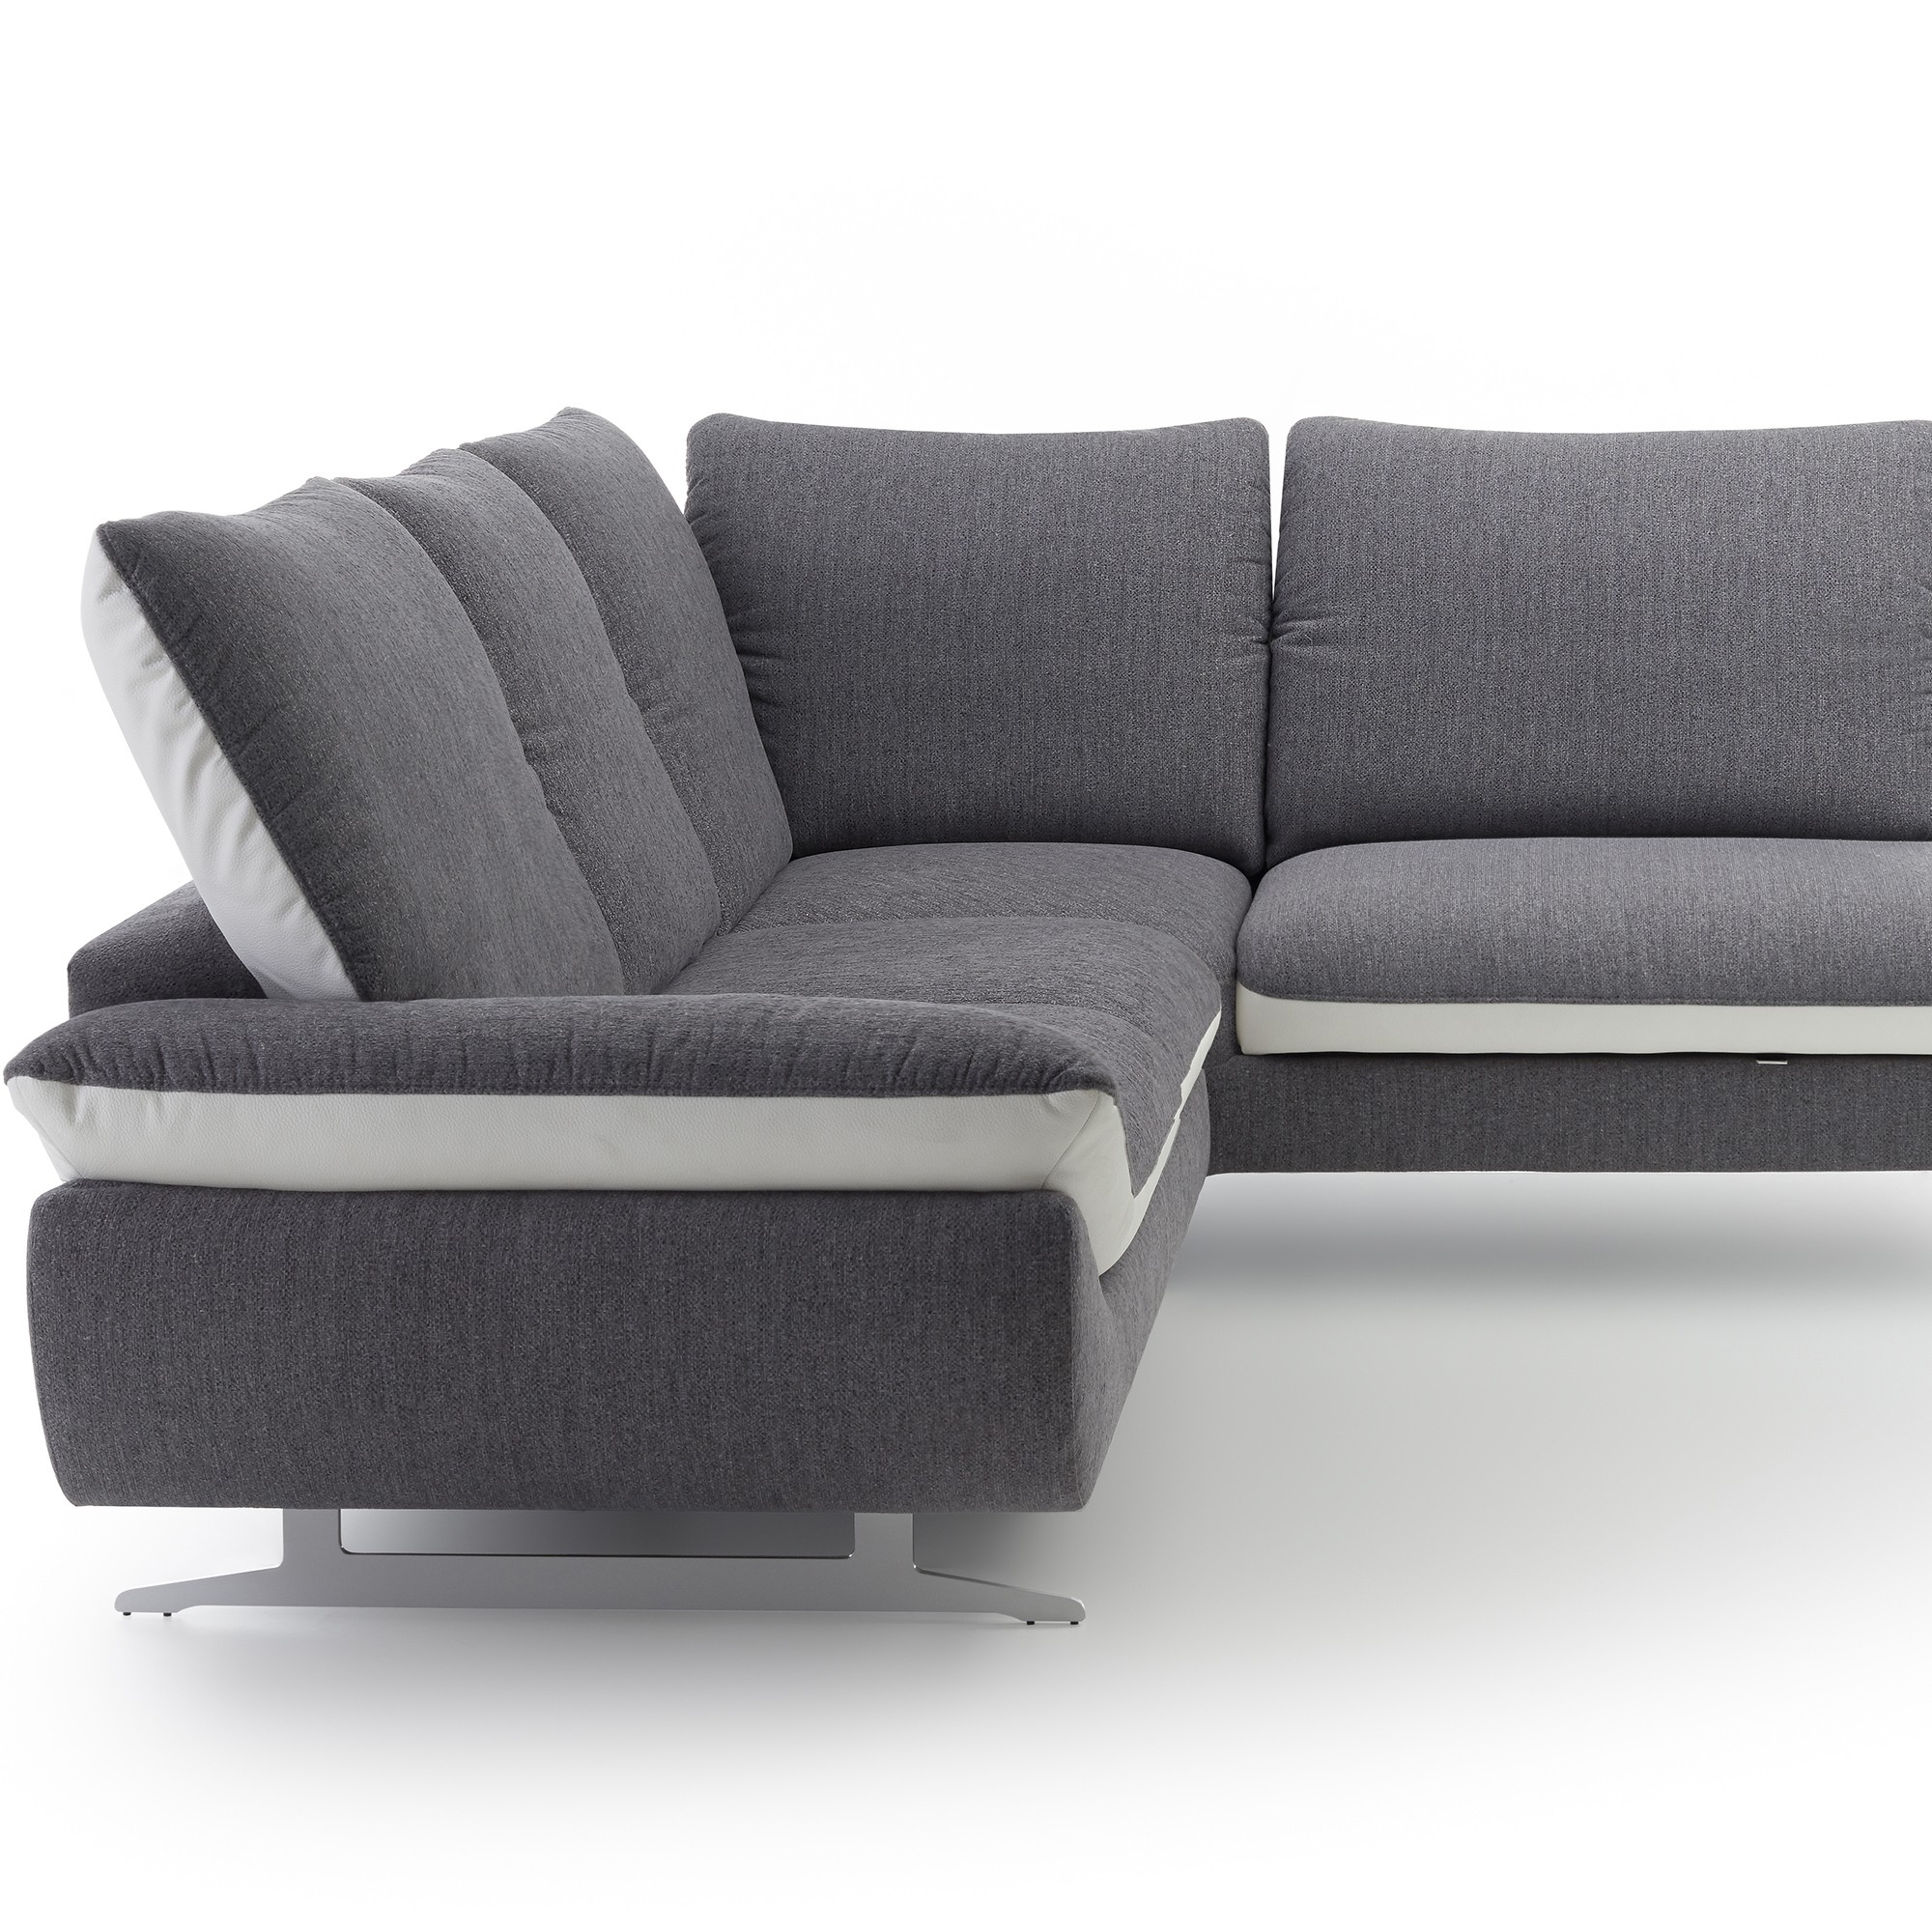 sectional sofas boston tribeca sofa crate and barrel top 20 of trinidad tobago most recently released intended for il decor